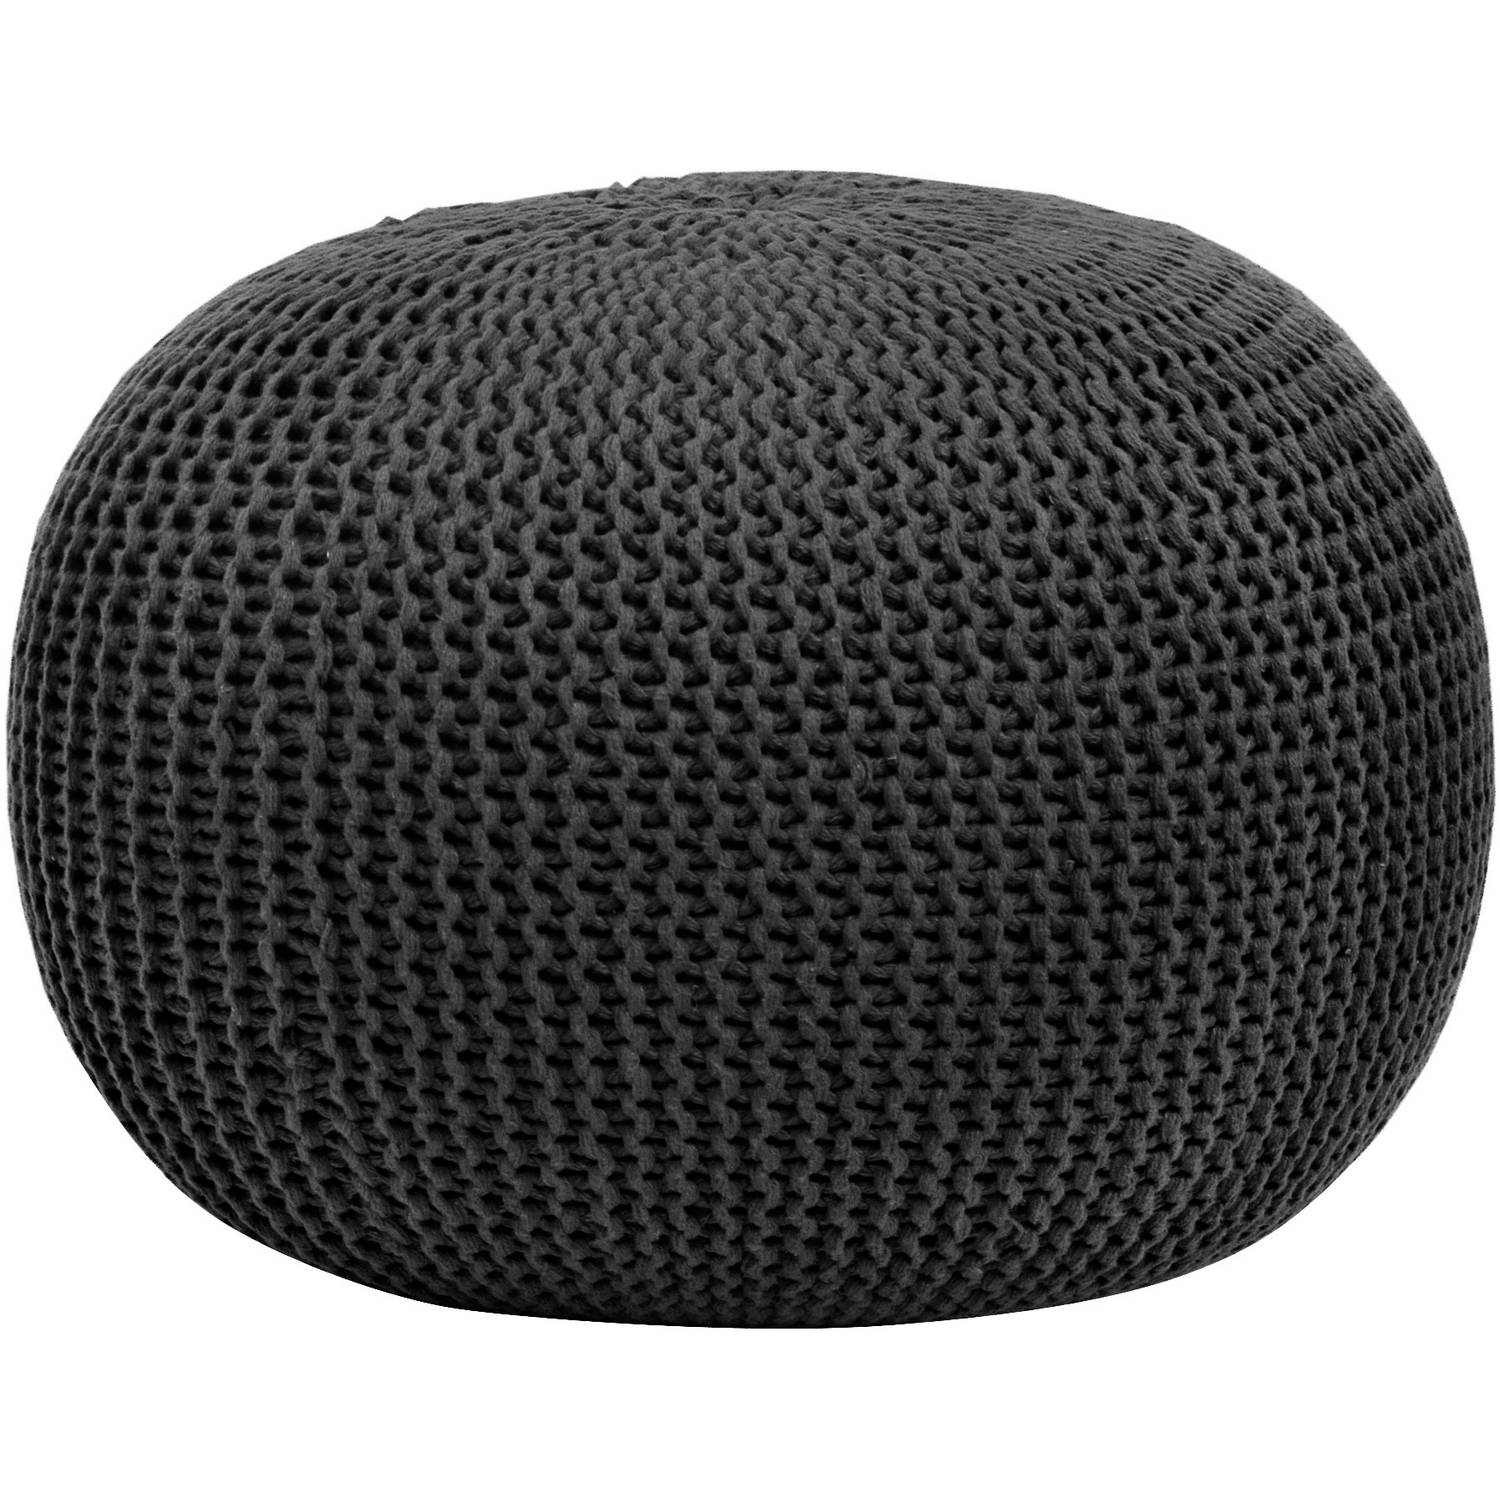 Pouf Chair Urban Shop Round Knit Pouf Stool Poof Floor Cover Decor